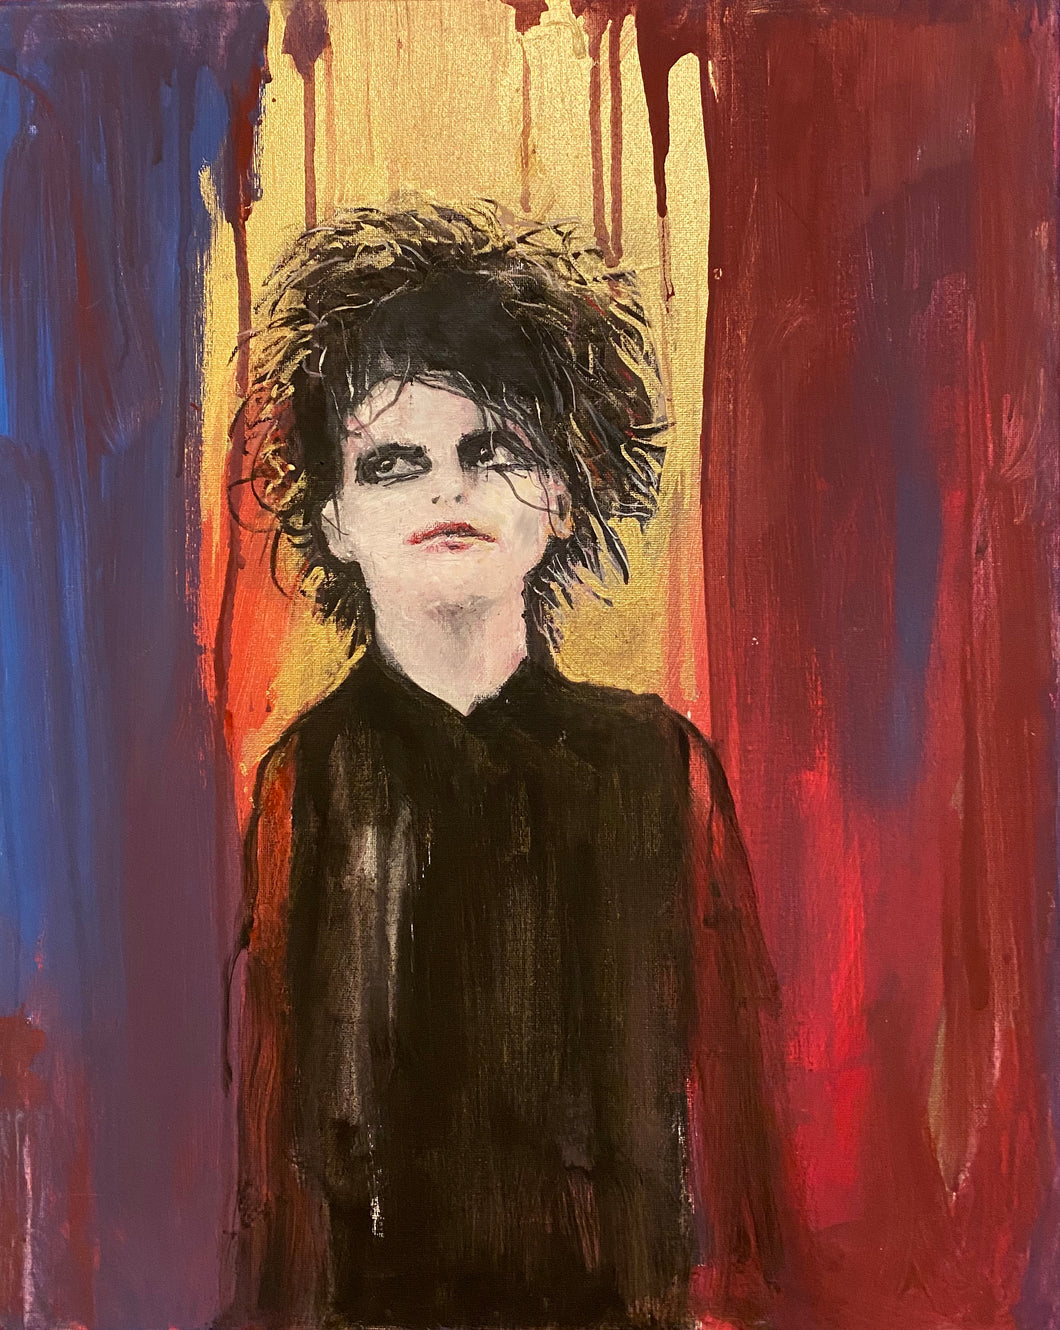 Robert Smith - The Cure - Original Portrait.